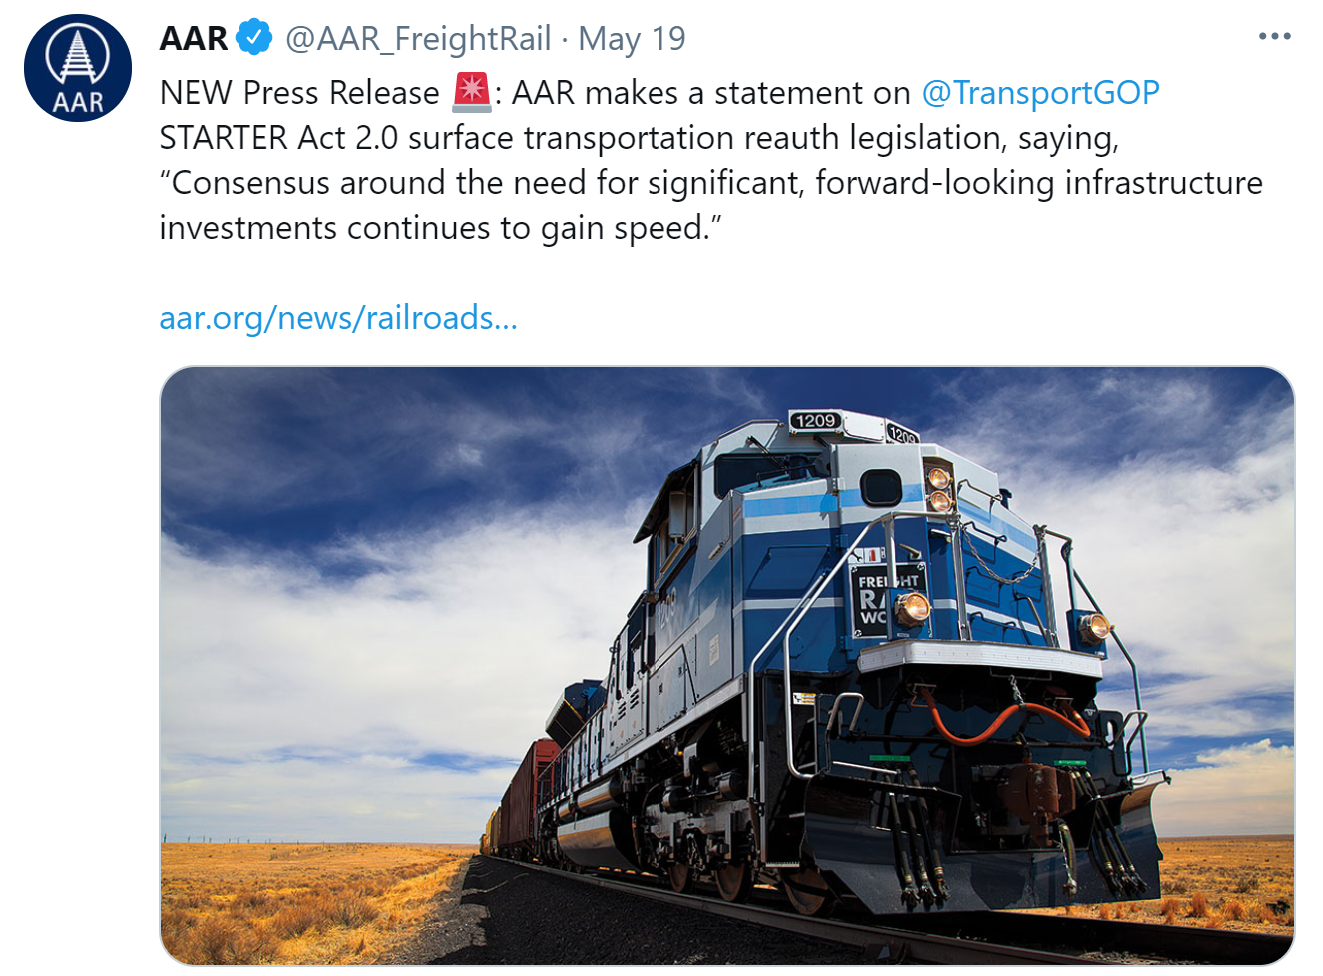 AAR Supports STARTER Act 2.0